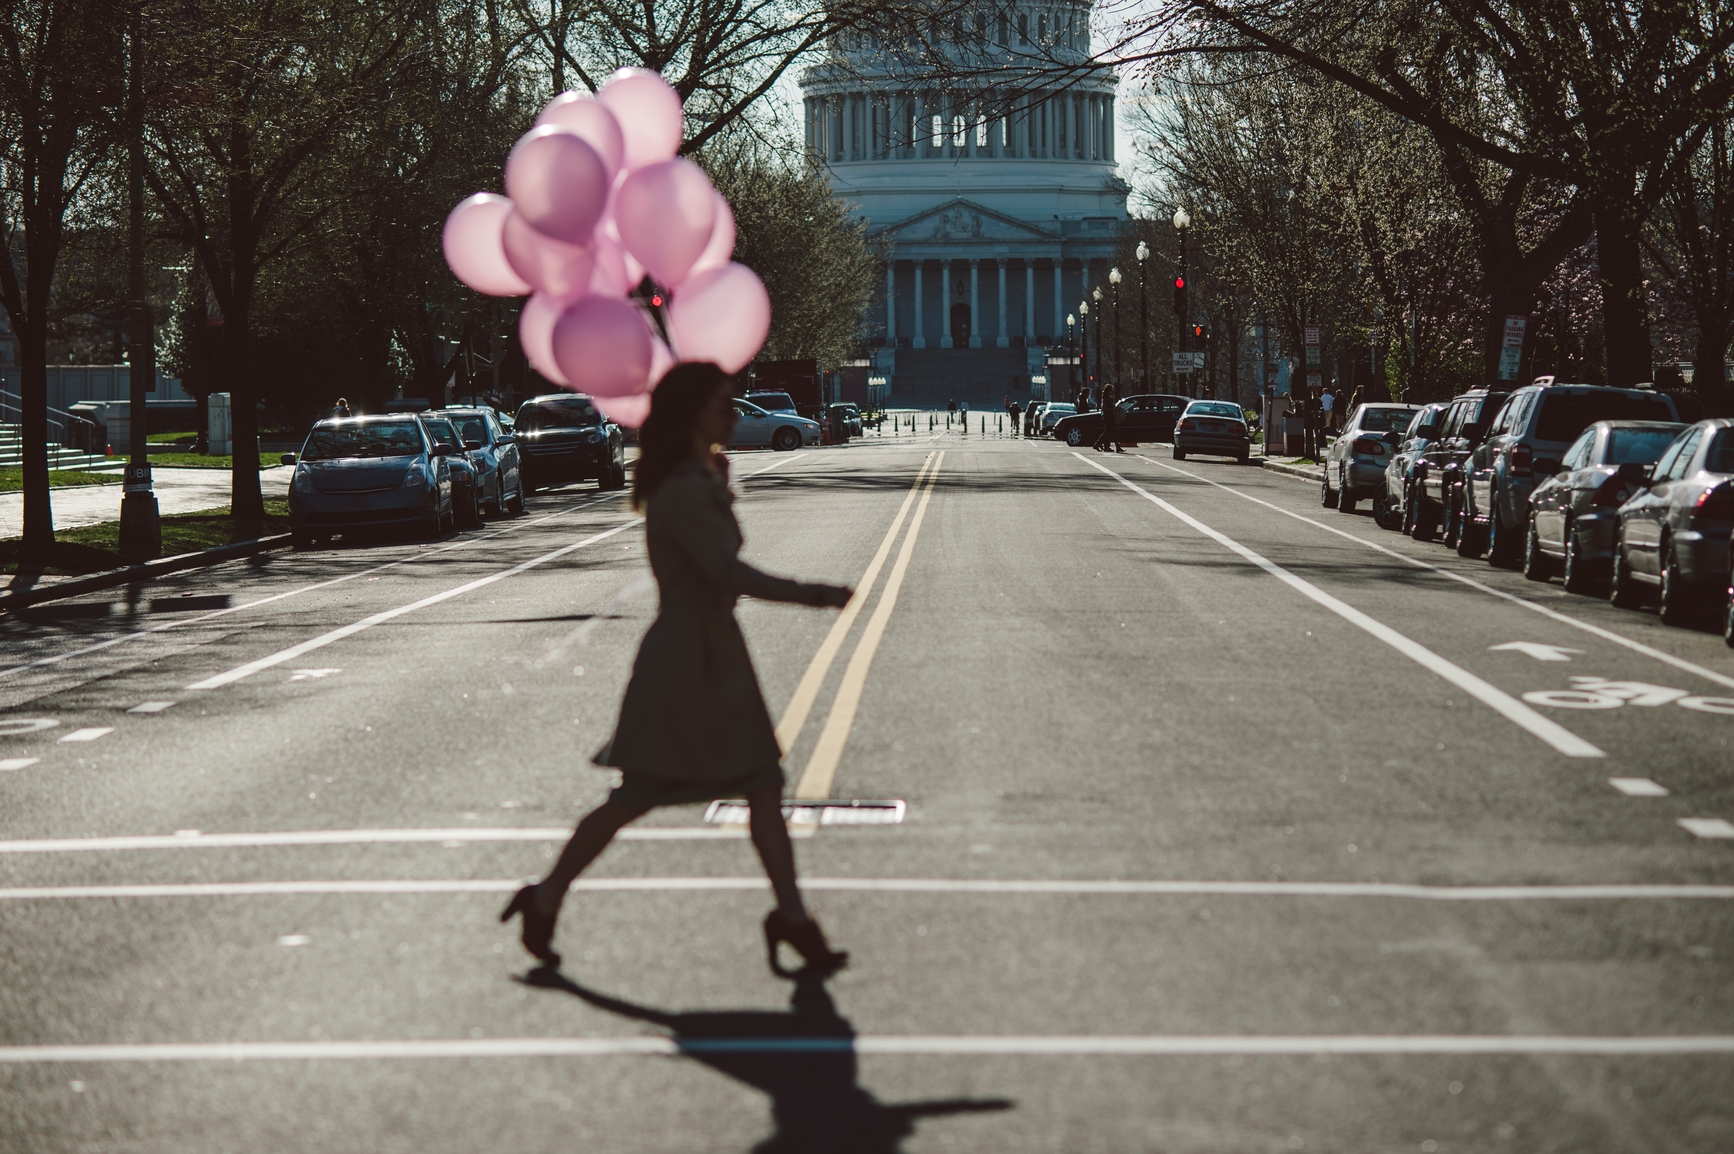 Woman walking across street carrying a bunch of pink balloons, with Capitol building in background